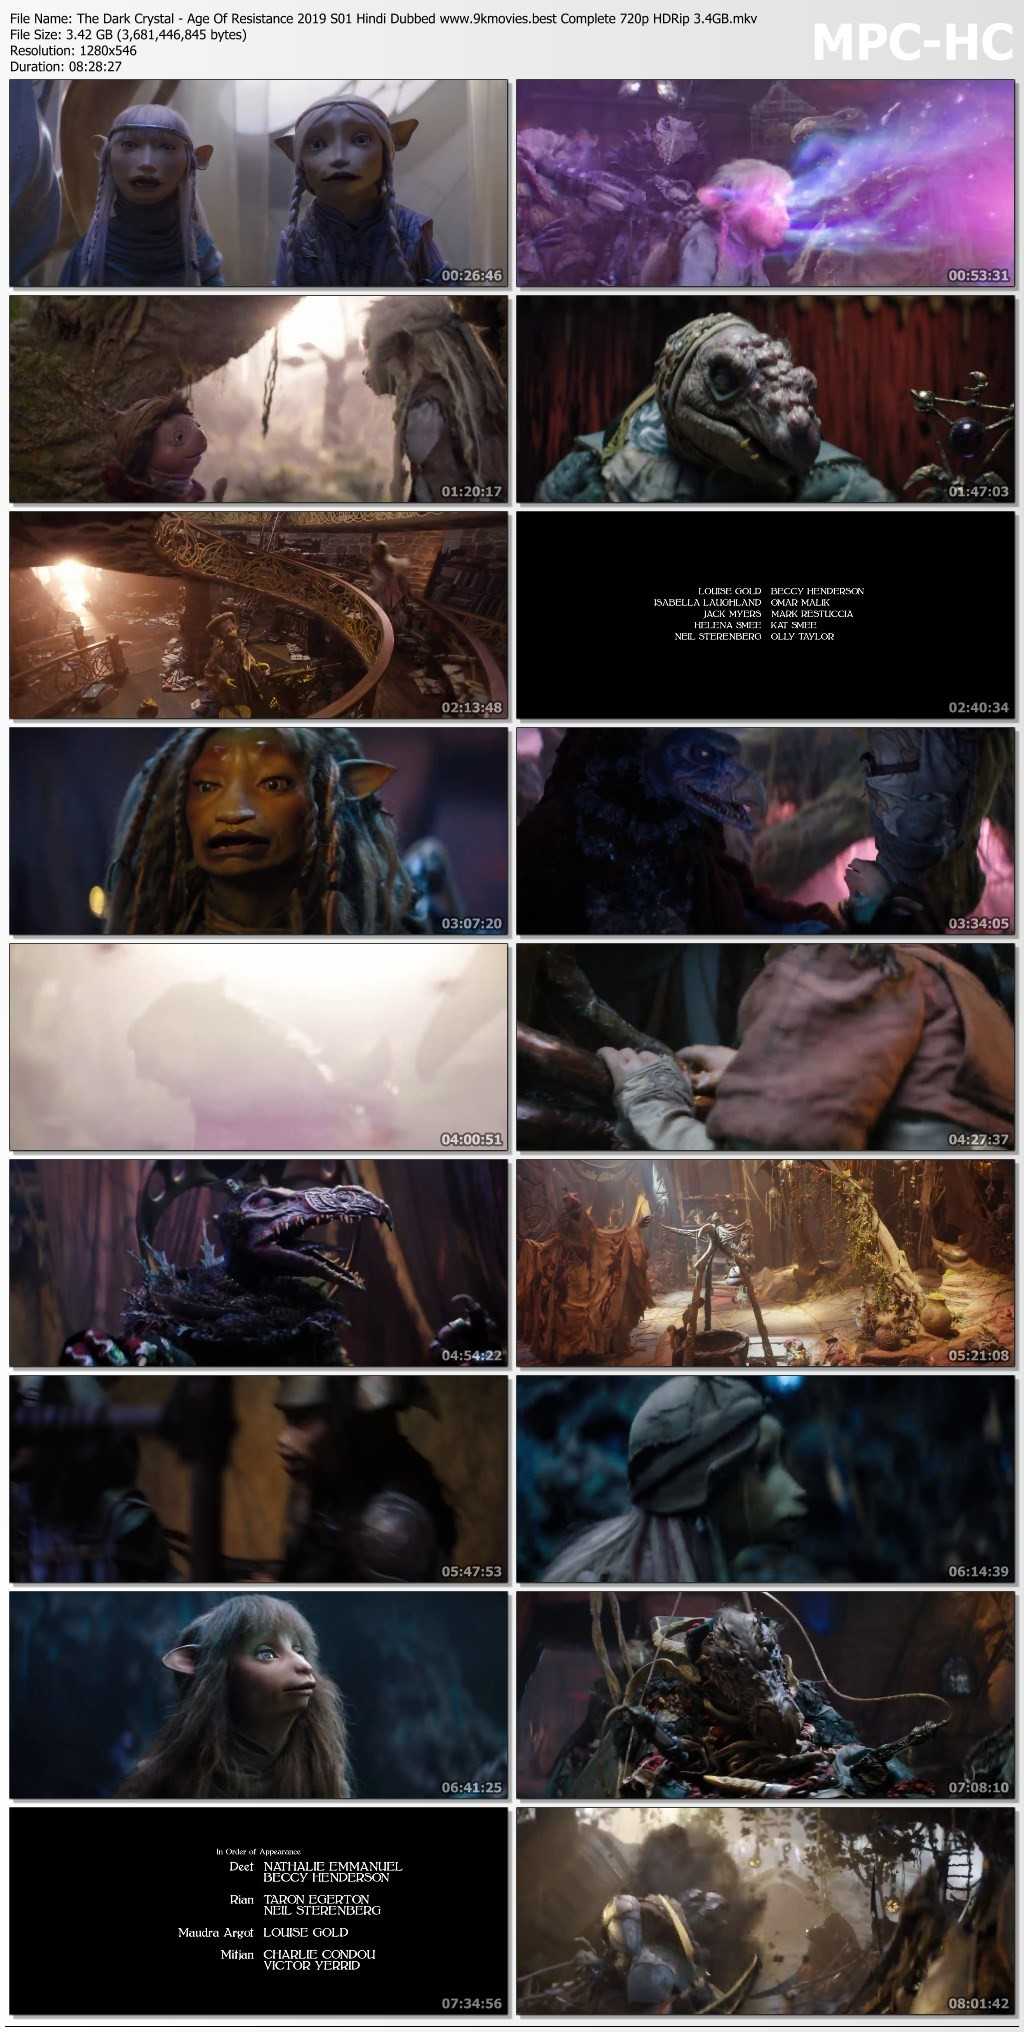 The Dark Crystal Age Of Resistance 2019 S01 Hindi Dubbed